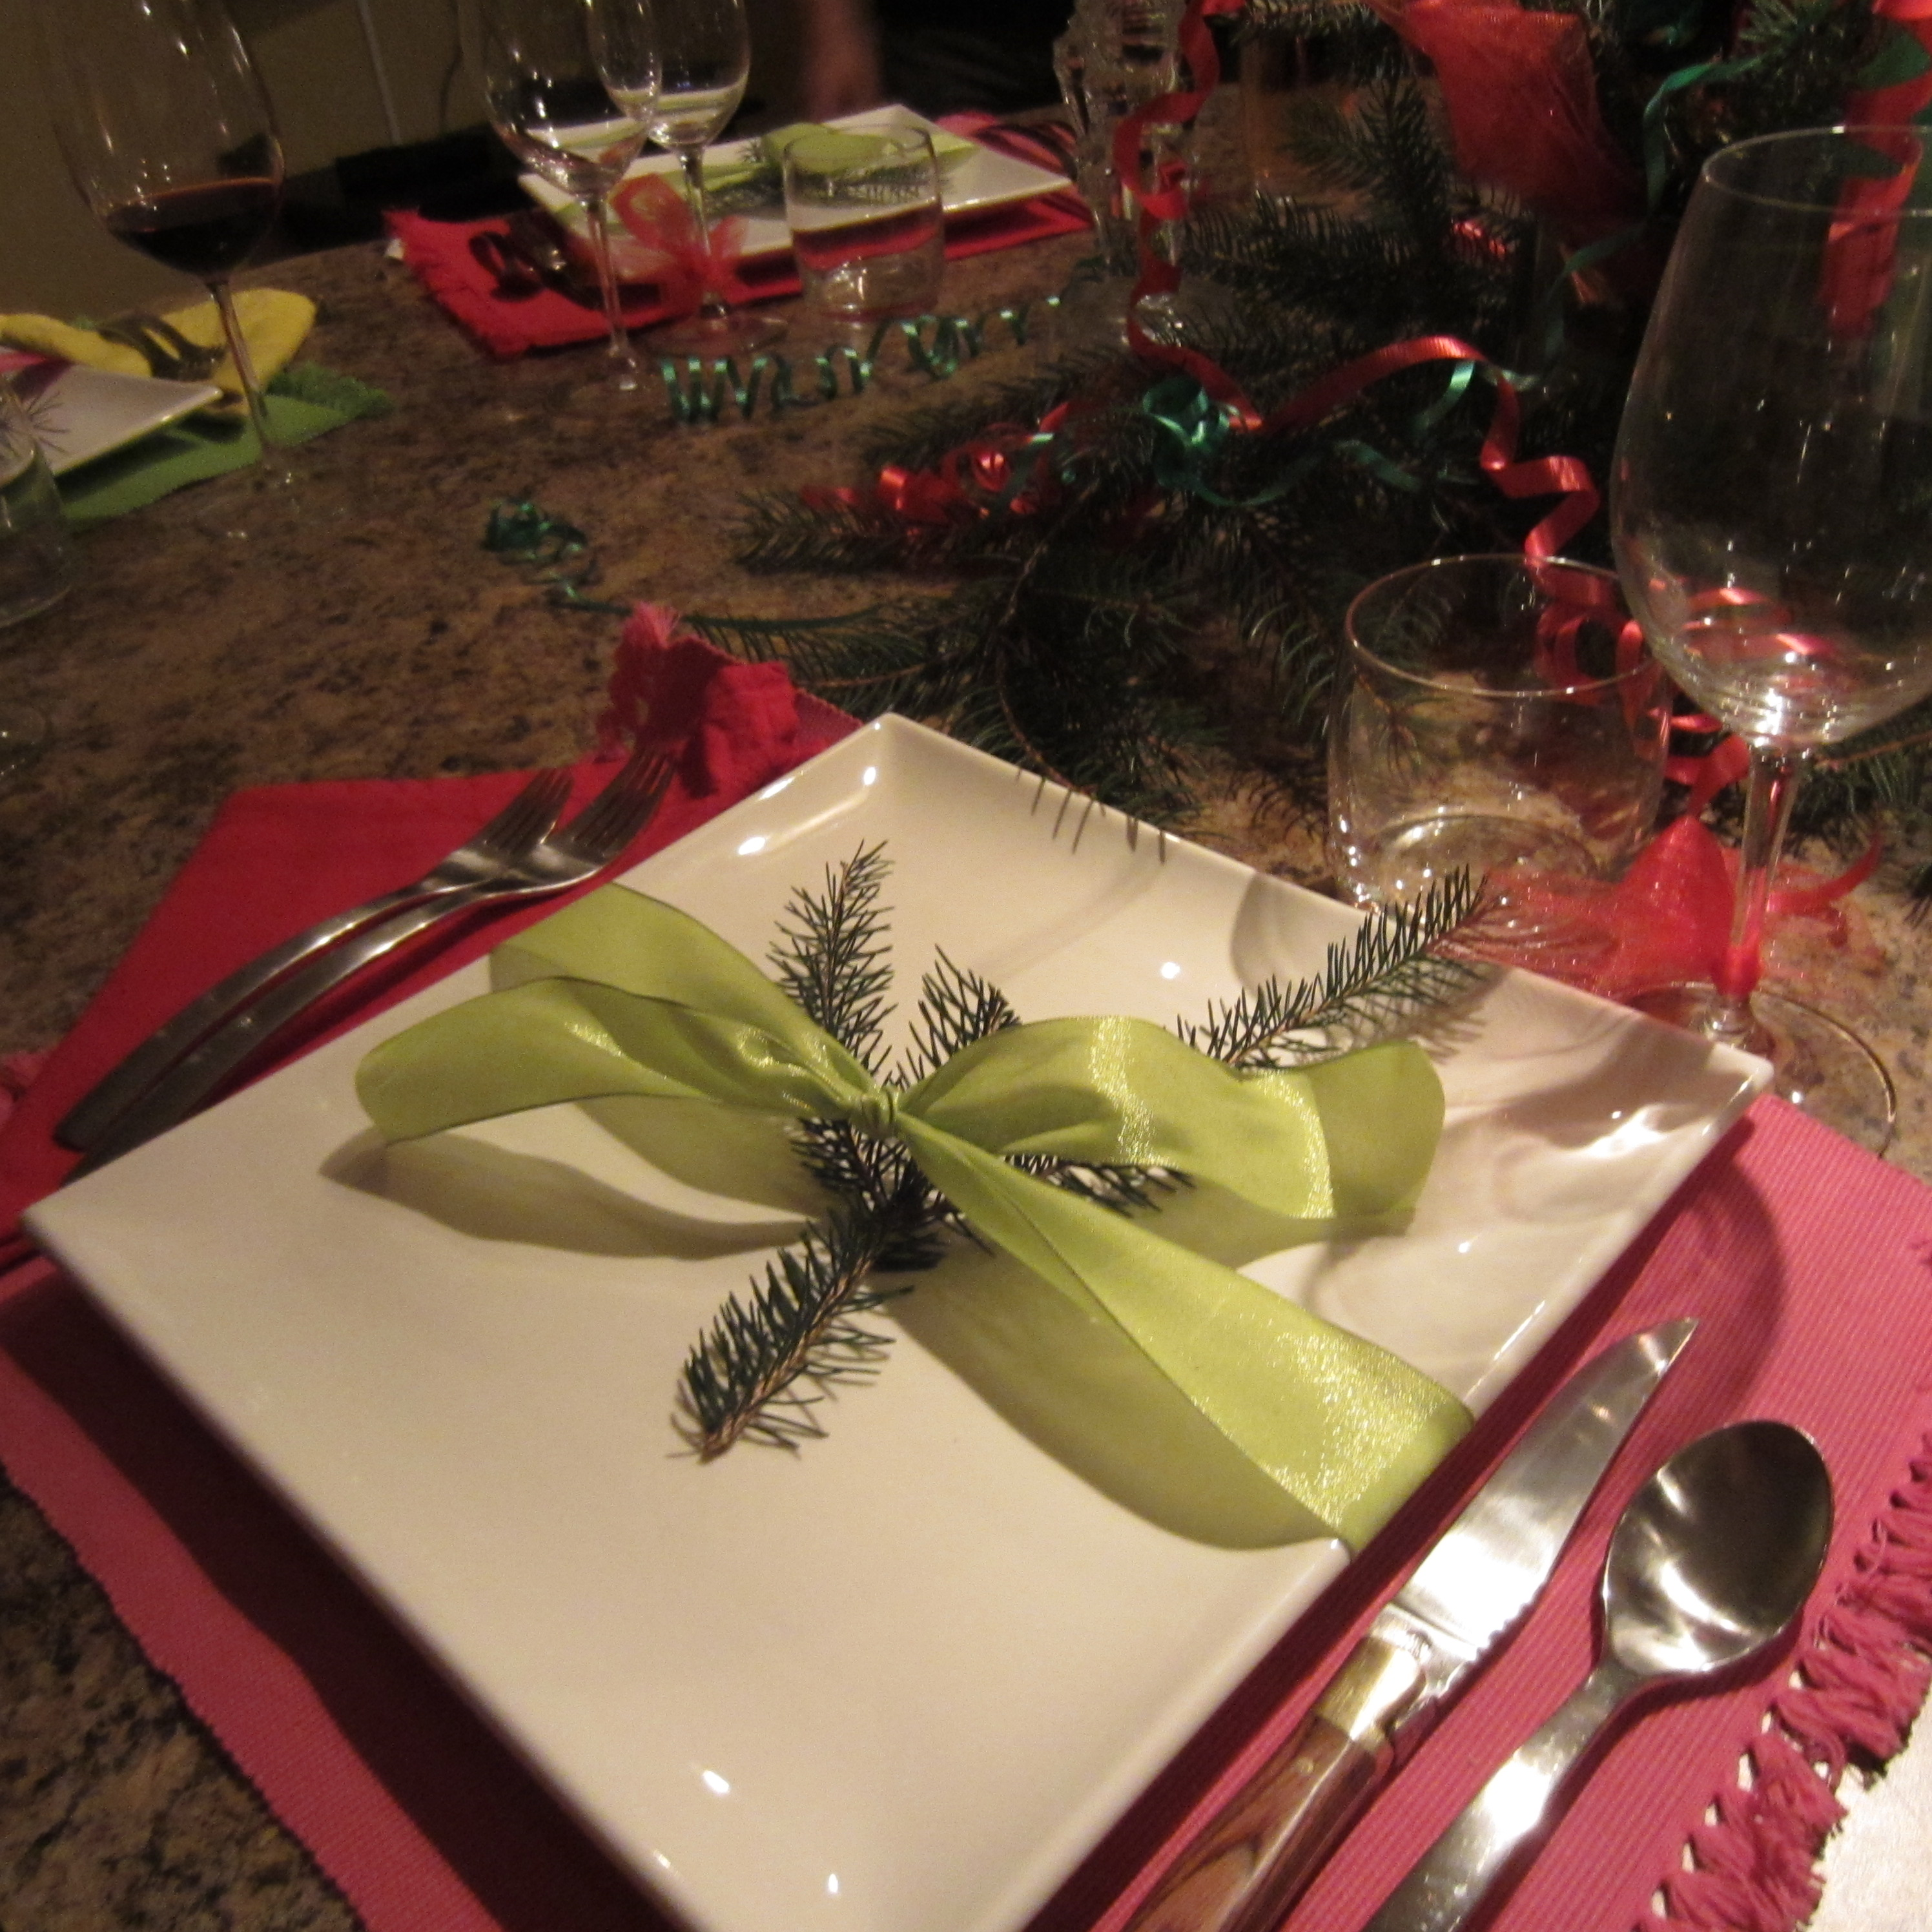 Holiday Place Settings: Simple Holiday Place Settings (Christmas)